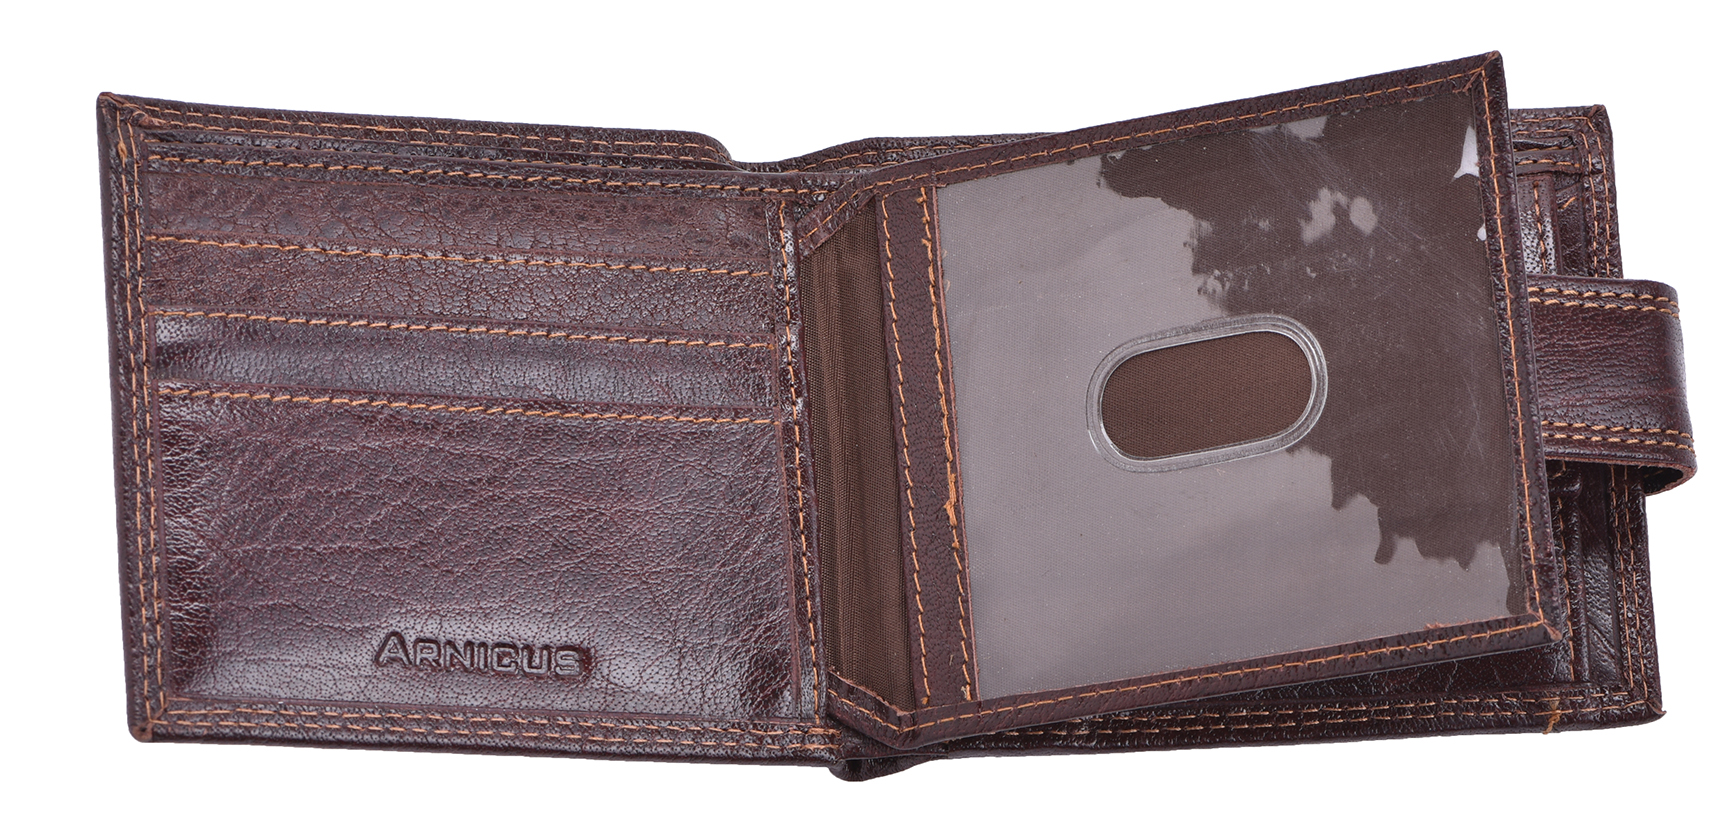 Luxe-Veritable-Grained-Cuir-Homme-Flip-Out-Wallet-Purse-Coin-Holder-Brown miniature 3